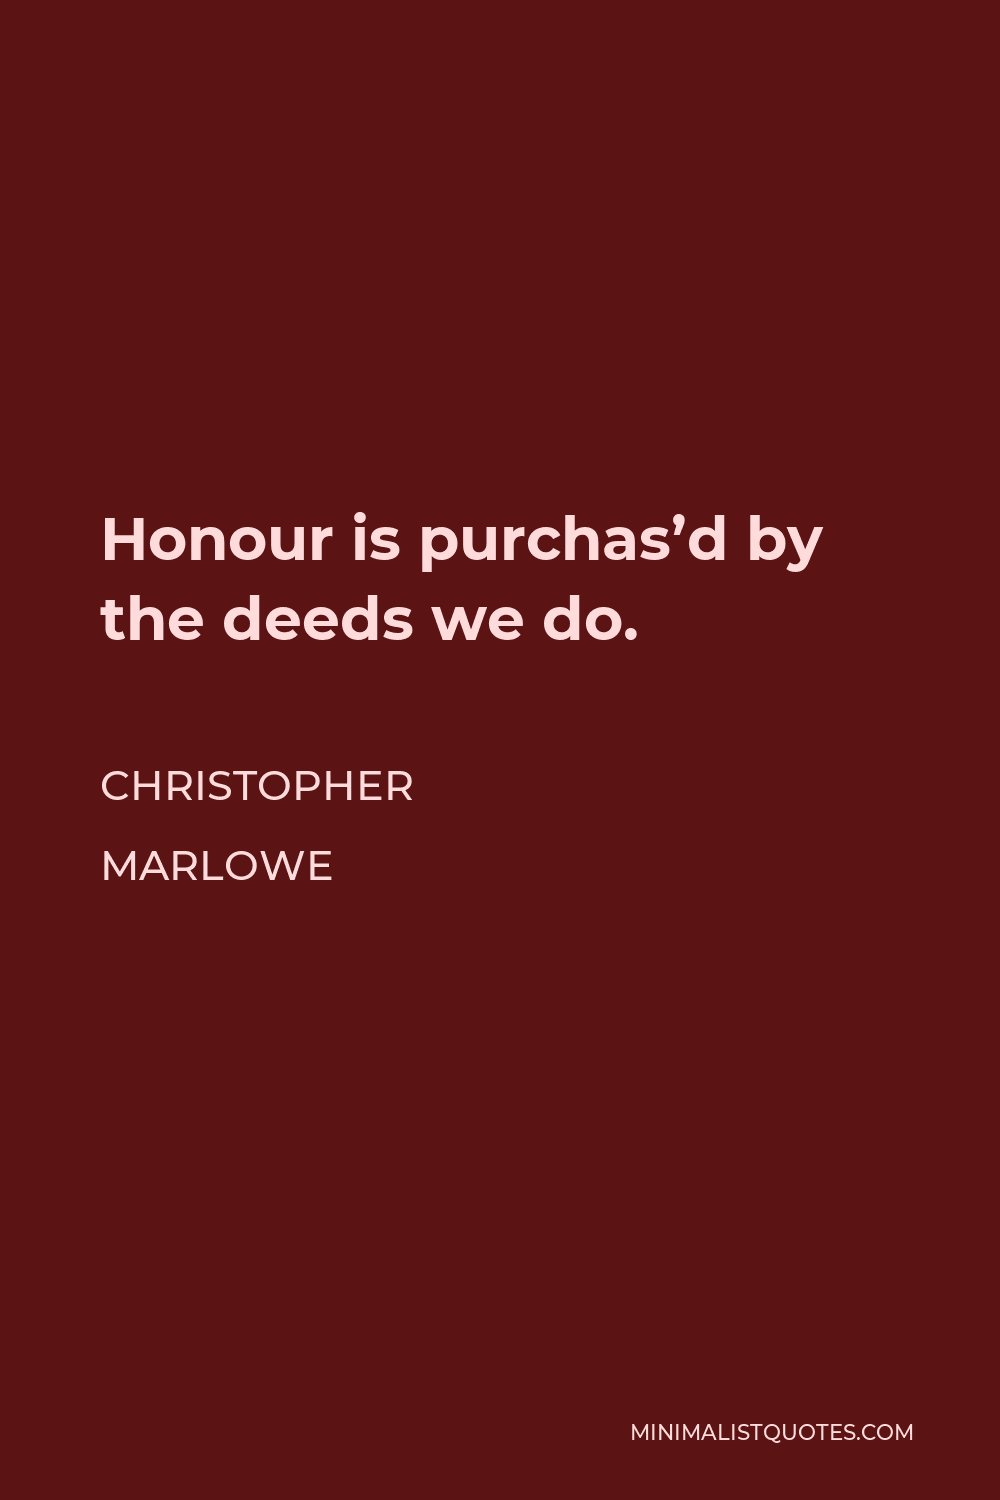 Christopher Marlowe Quote - Honour is purchas'd by the deeds we do.